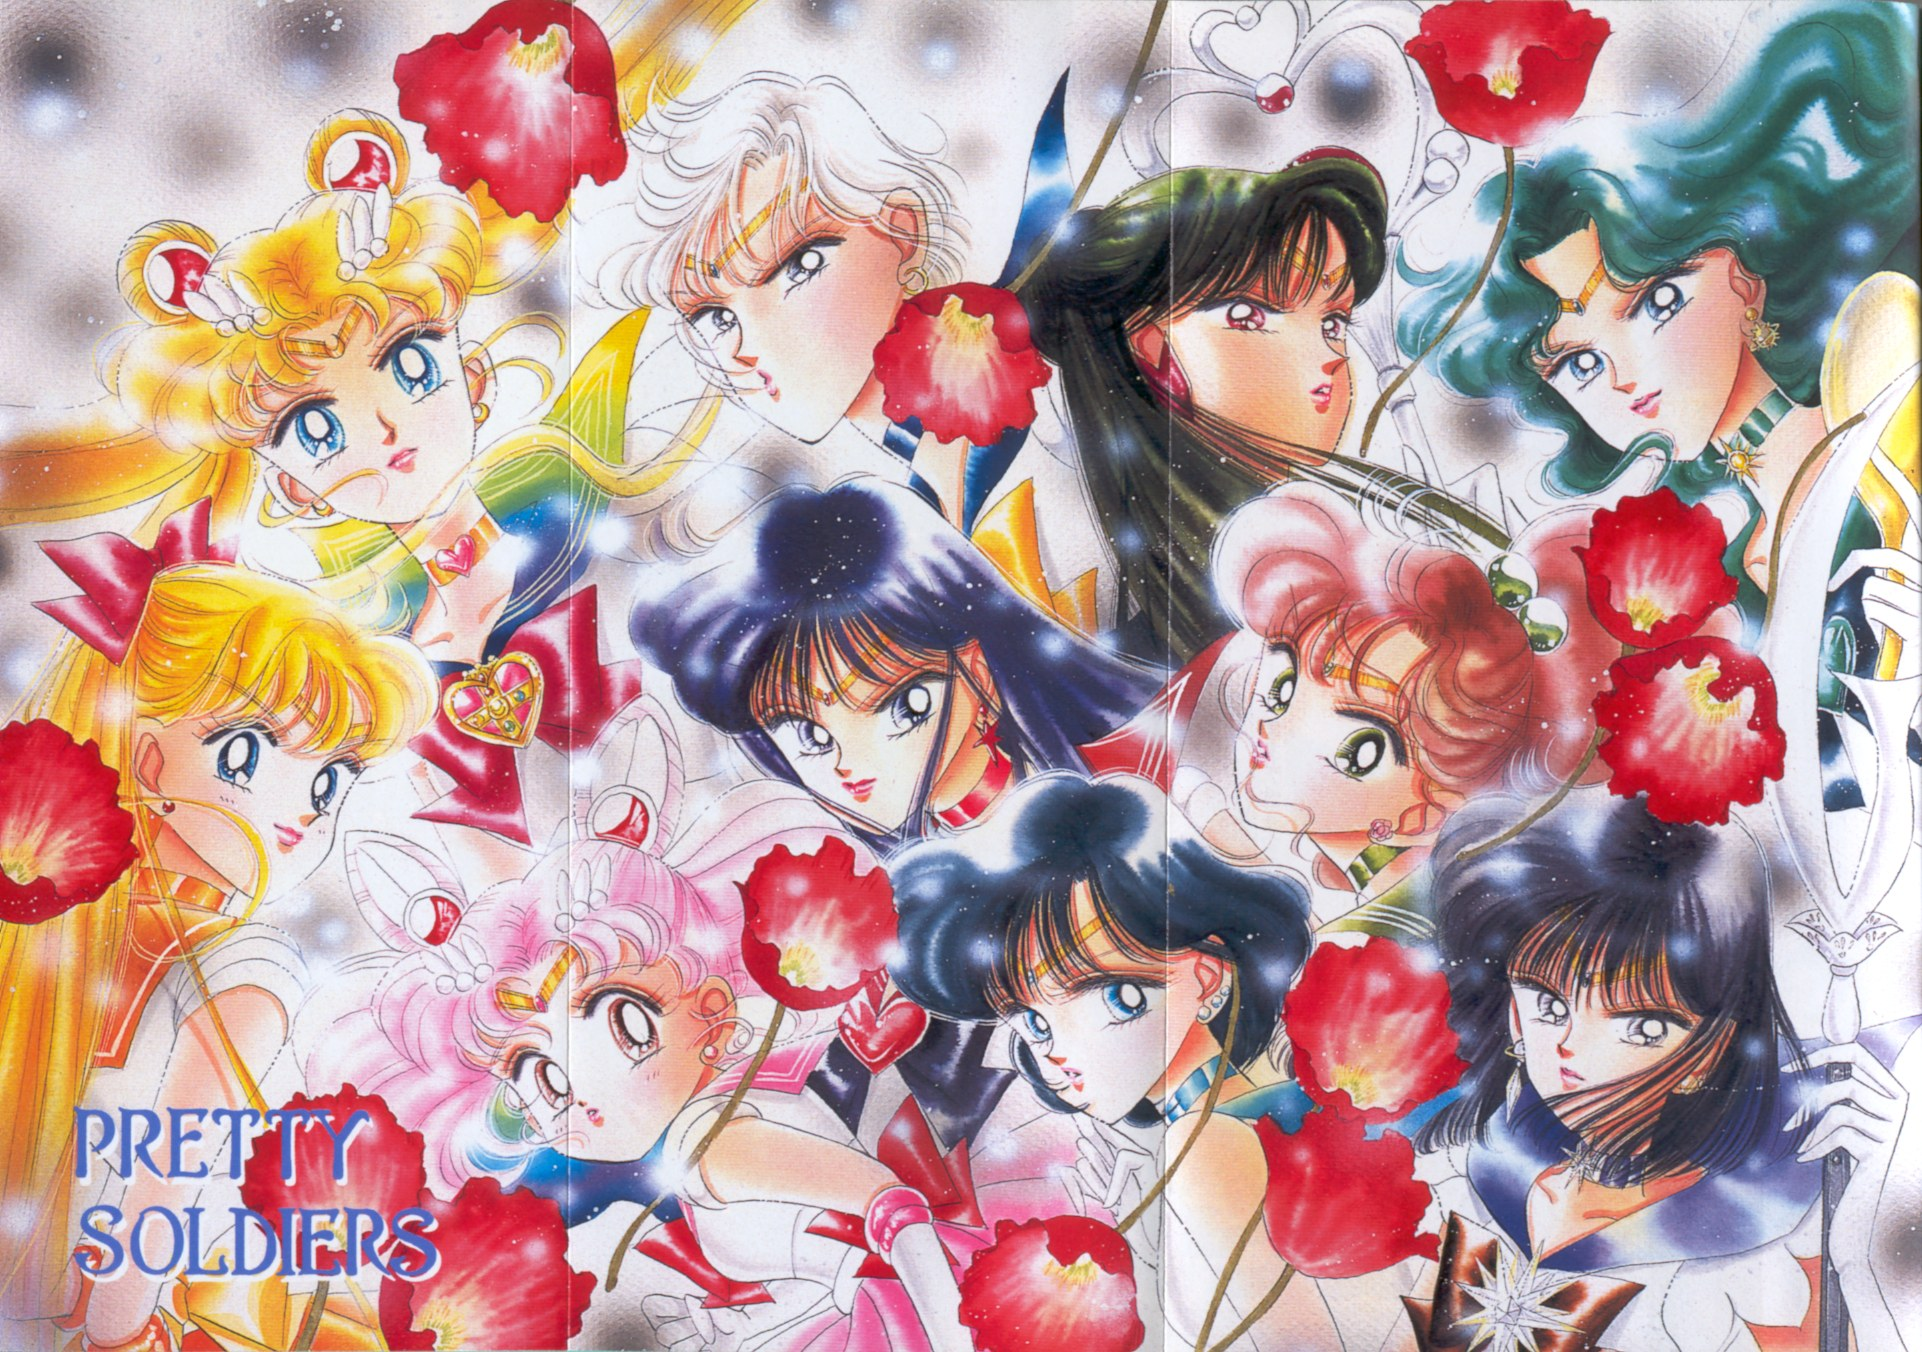 Where is Mars/Pluto? Sailormoon-artbook-3-08-09-tankoubon-poster